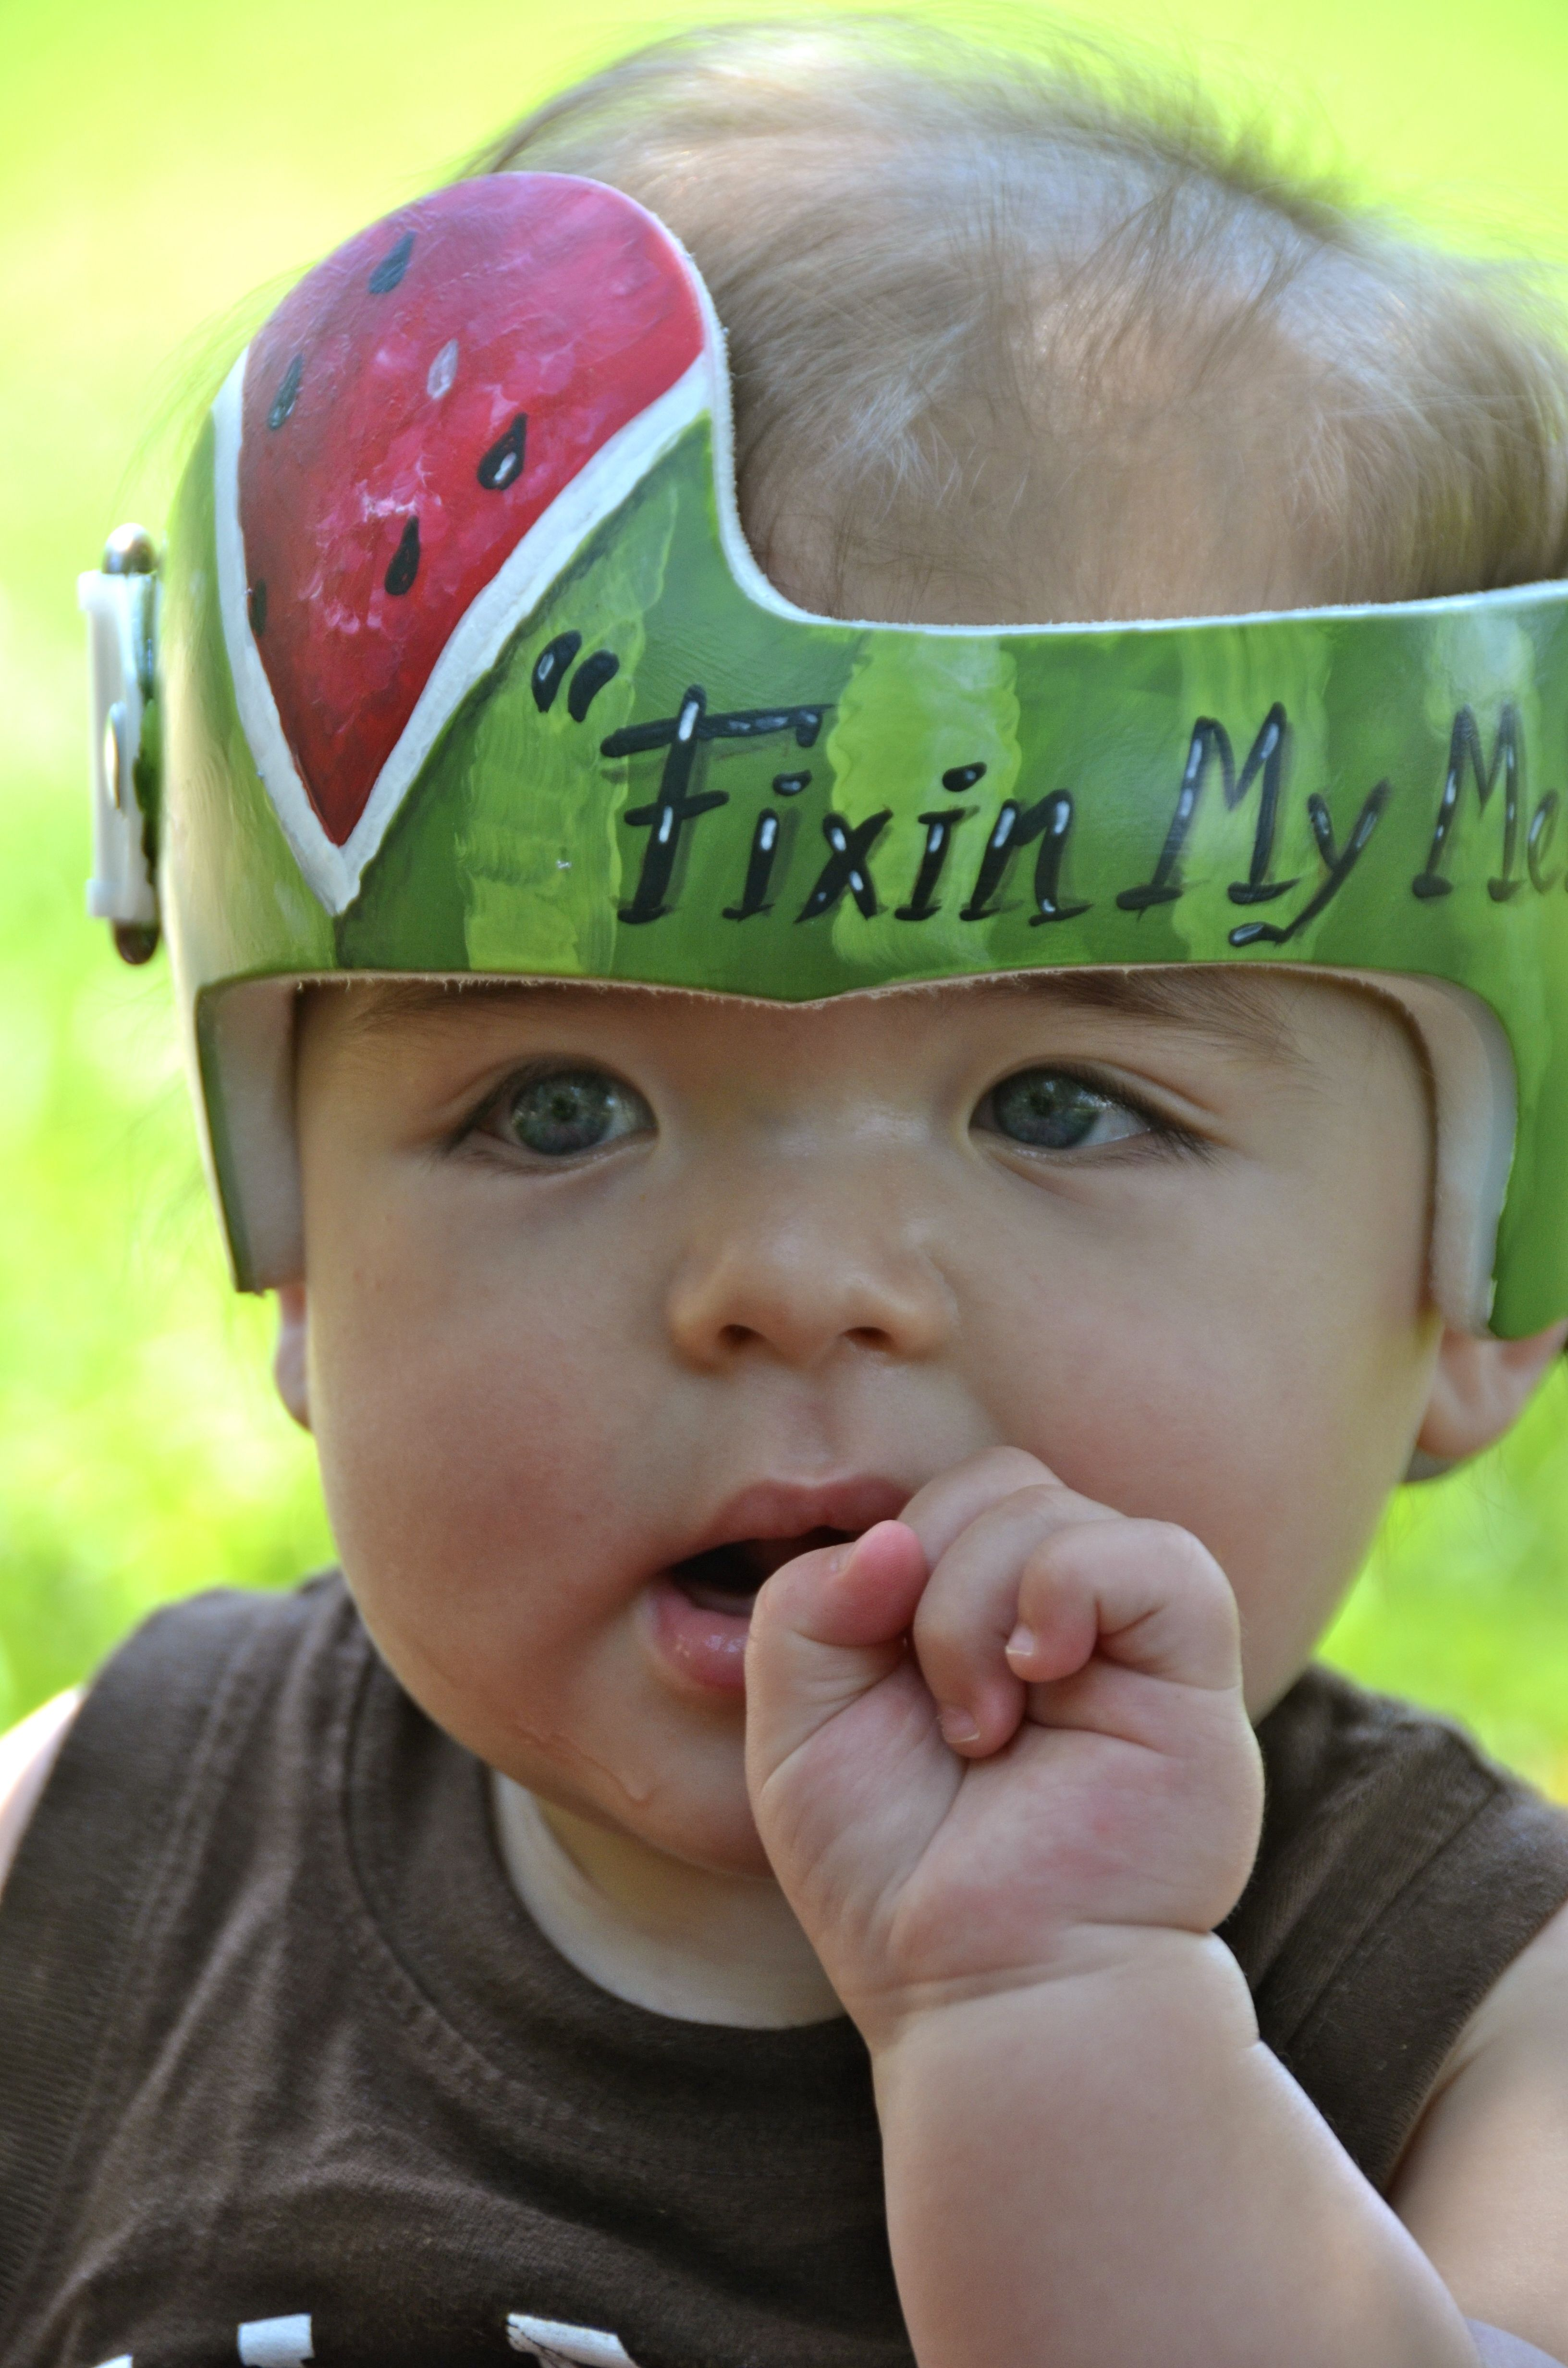 Pin By Leigh Gibson On Cranial Bands Helmets Baby Helmet Doc Band Baby Helmet Design